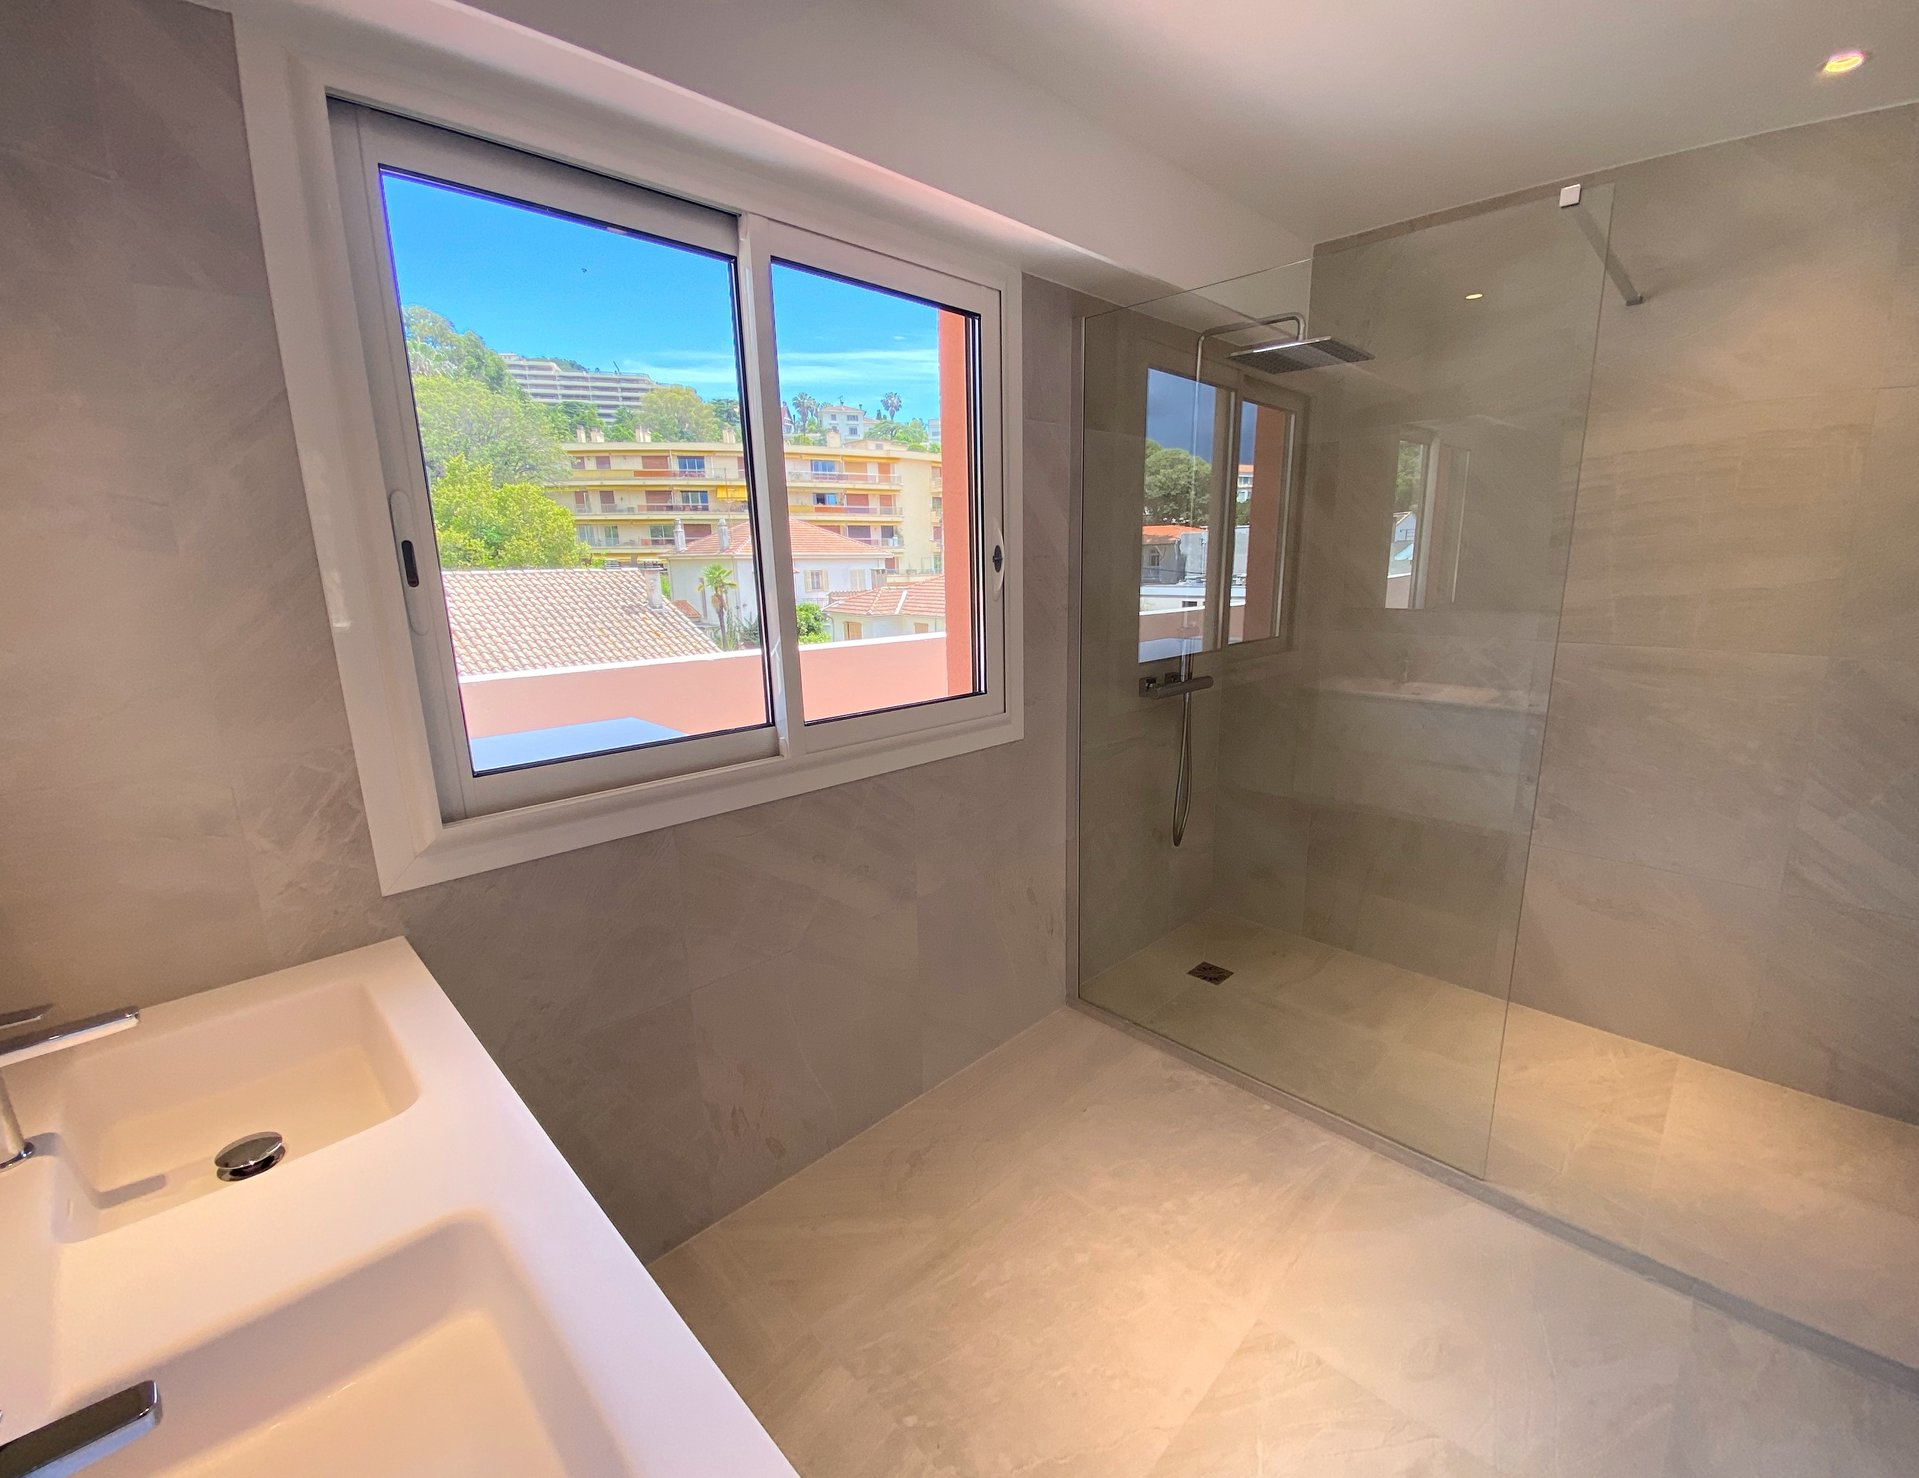 CANNES Basse Californie - Top Floor - Apartment for sale by CANNES AGENCY